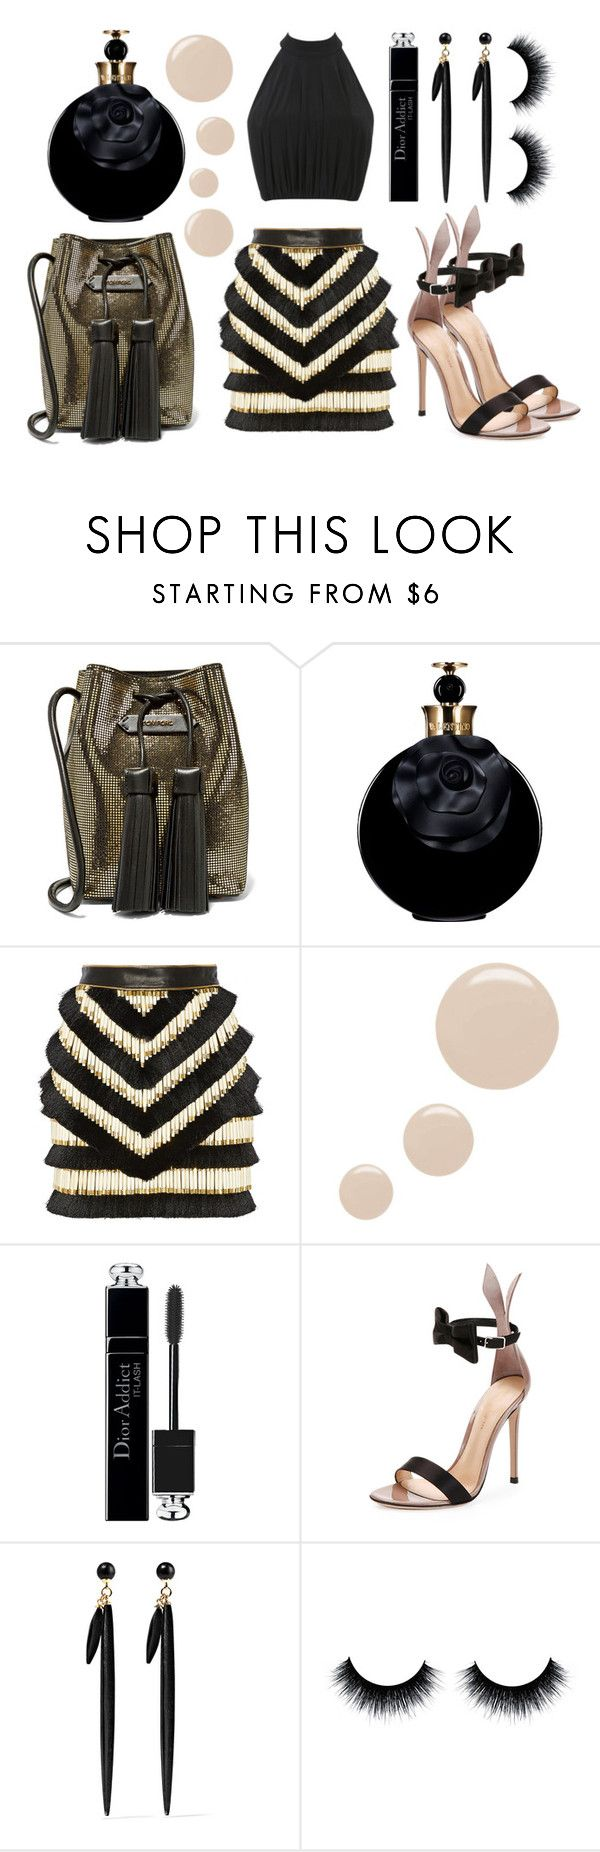 """Tom Ford bucket bag, Gianvito Rossi sandals, Raeve top, Balmain skirt, Isabel Marant earrings, Valentino Valentina perfume and Dior mascara."" by anastassiablog ❤ liked on Polyvore featuring Tom Ford, Valentino, Balmain, Topshop, Christian Dior, Gianvito Rossi and Isabel Marant"